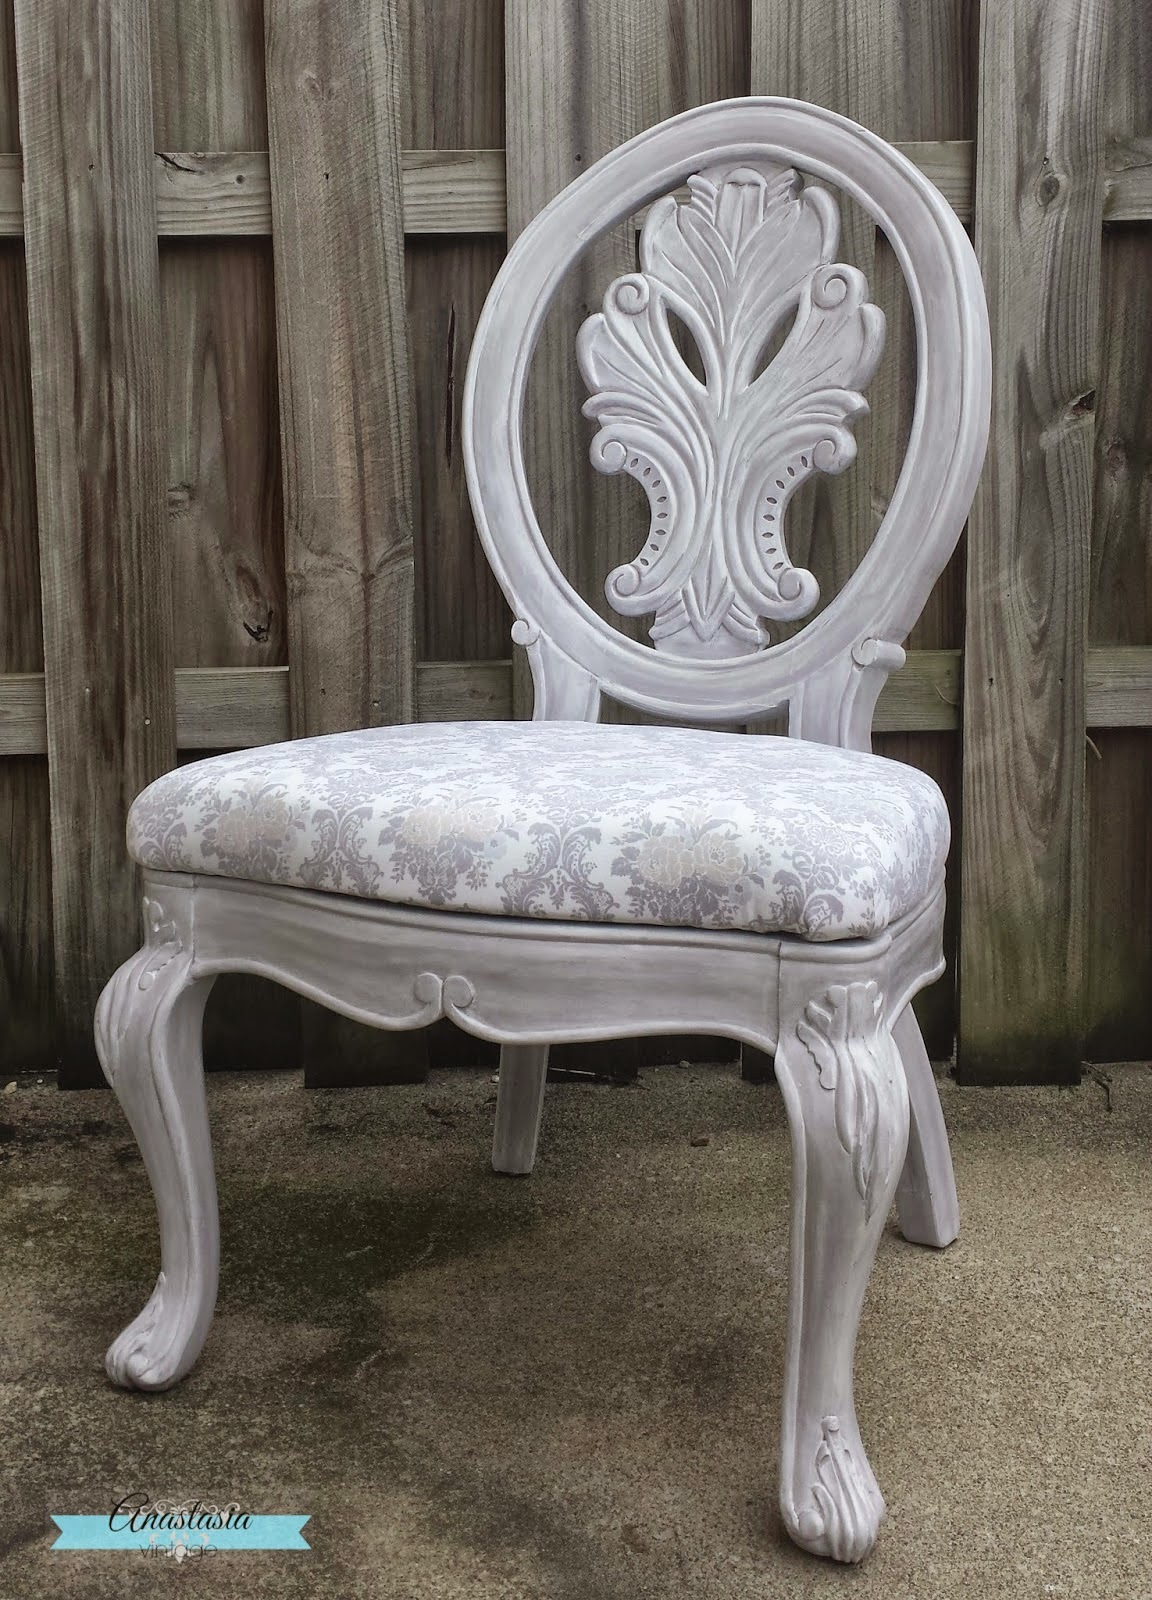 http://anastasiavintagehome.blogspot.ca/2014/09/shades-of-gray-part-1-cast-off-chair.html